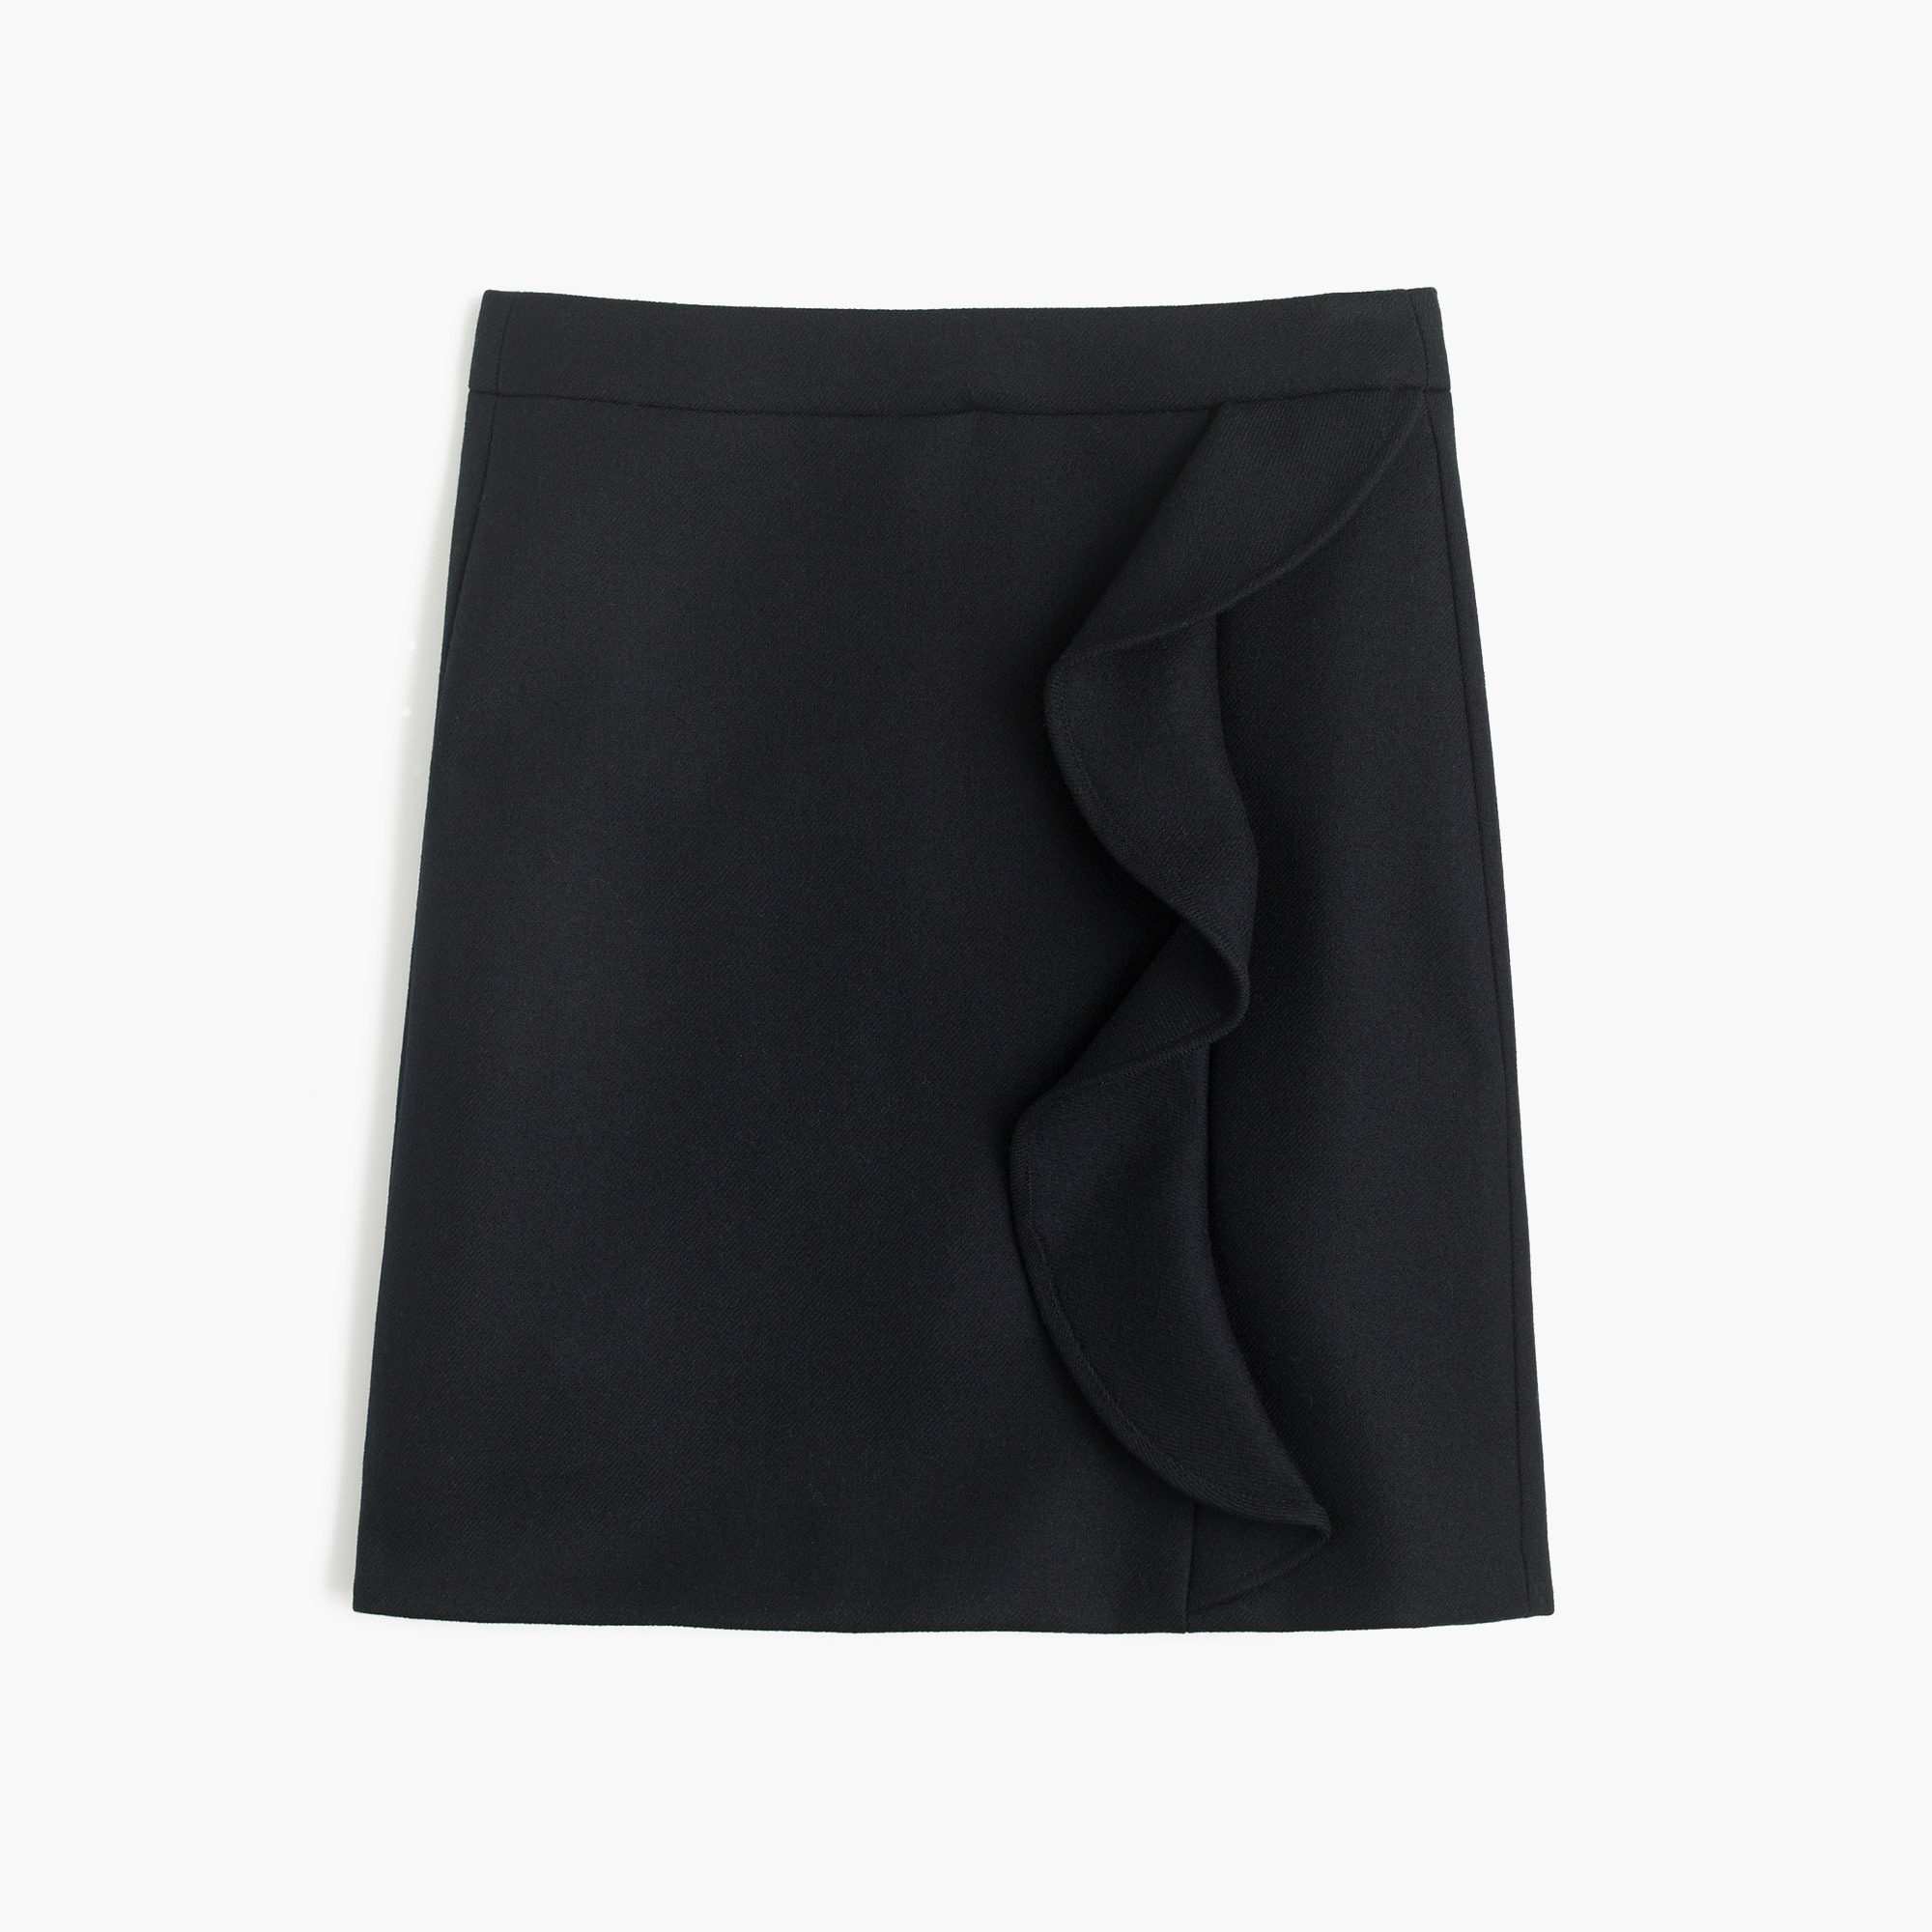 Image 3 for Petite ruffle mini skirt in double-serge wool